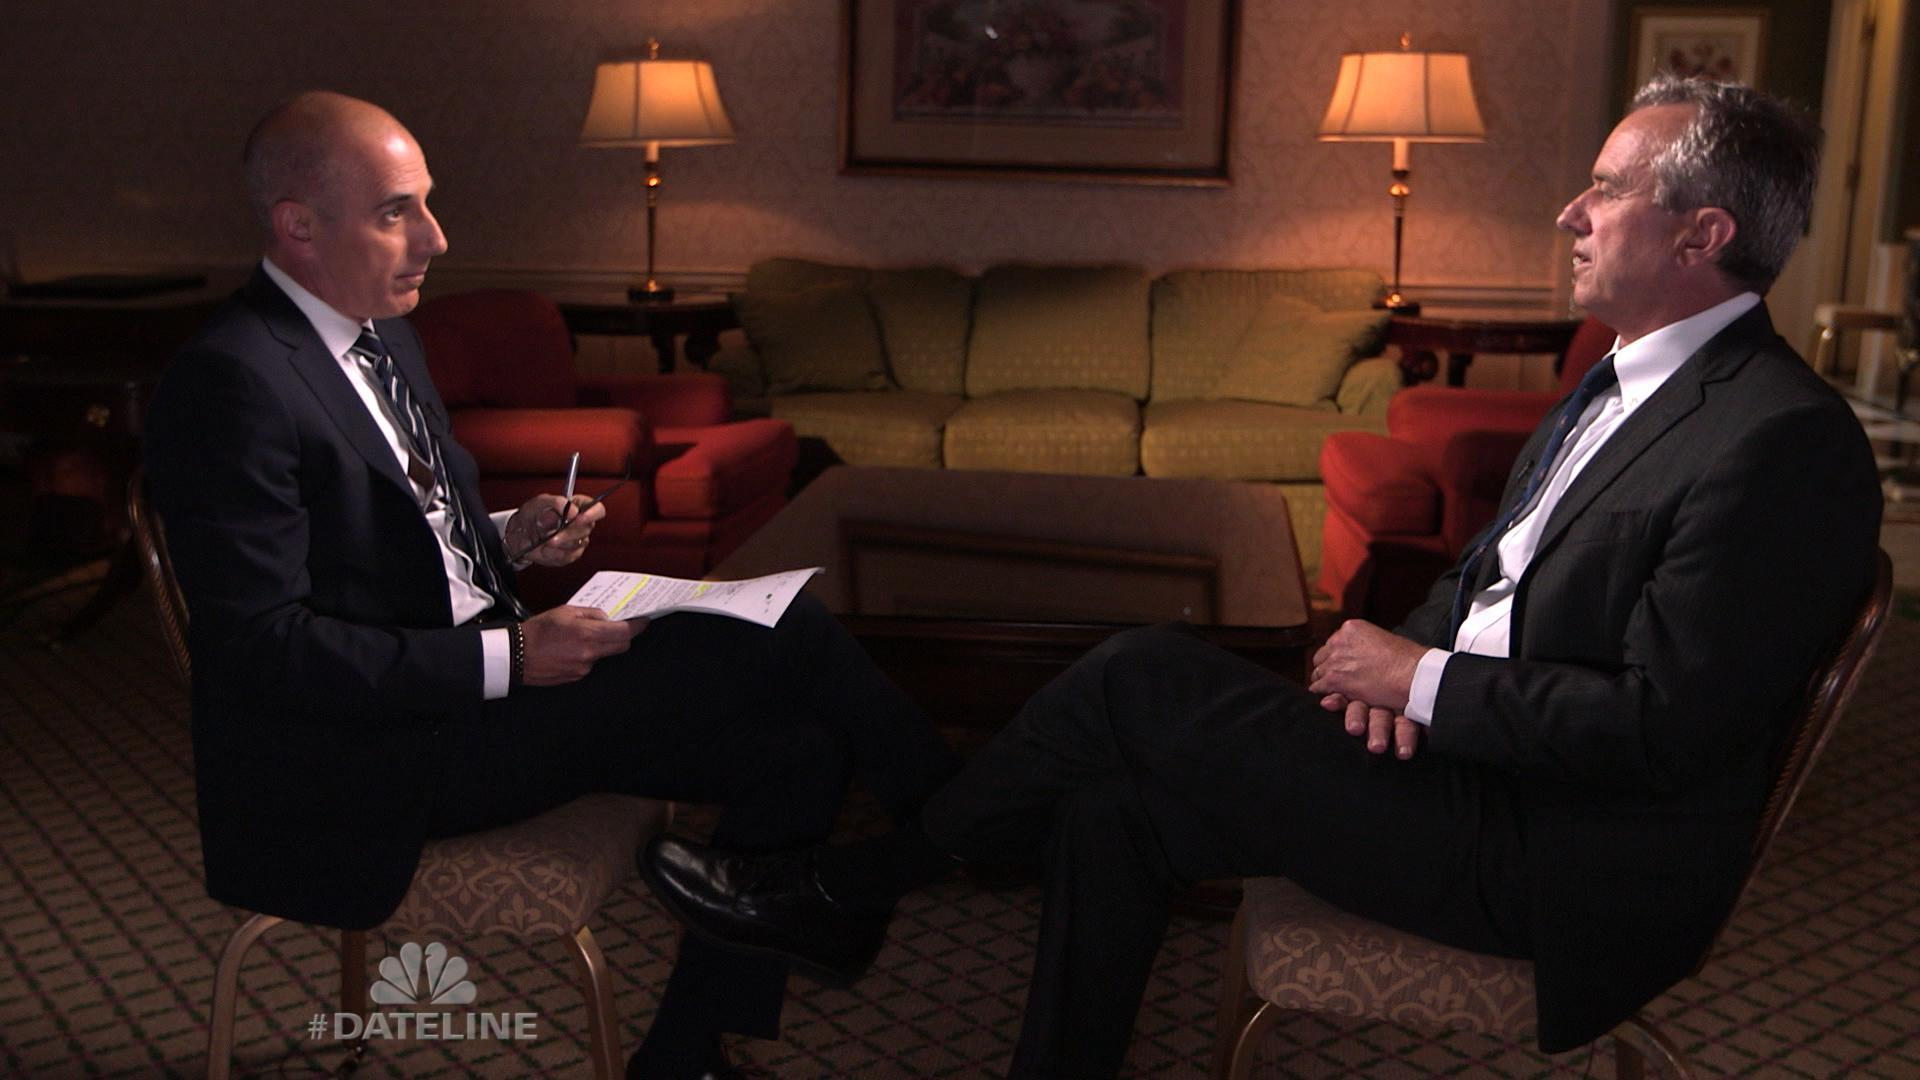 The Murder of Martha Moxley: Robert F. Kennedy Jr. sits down with Matt Lauer Friday on Dateline